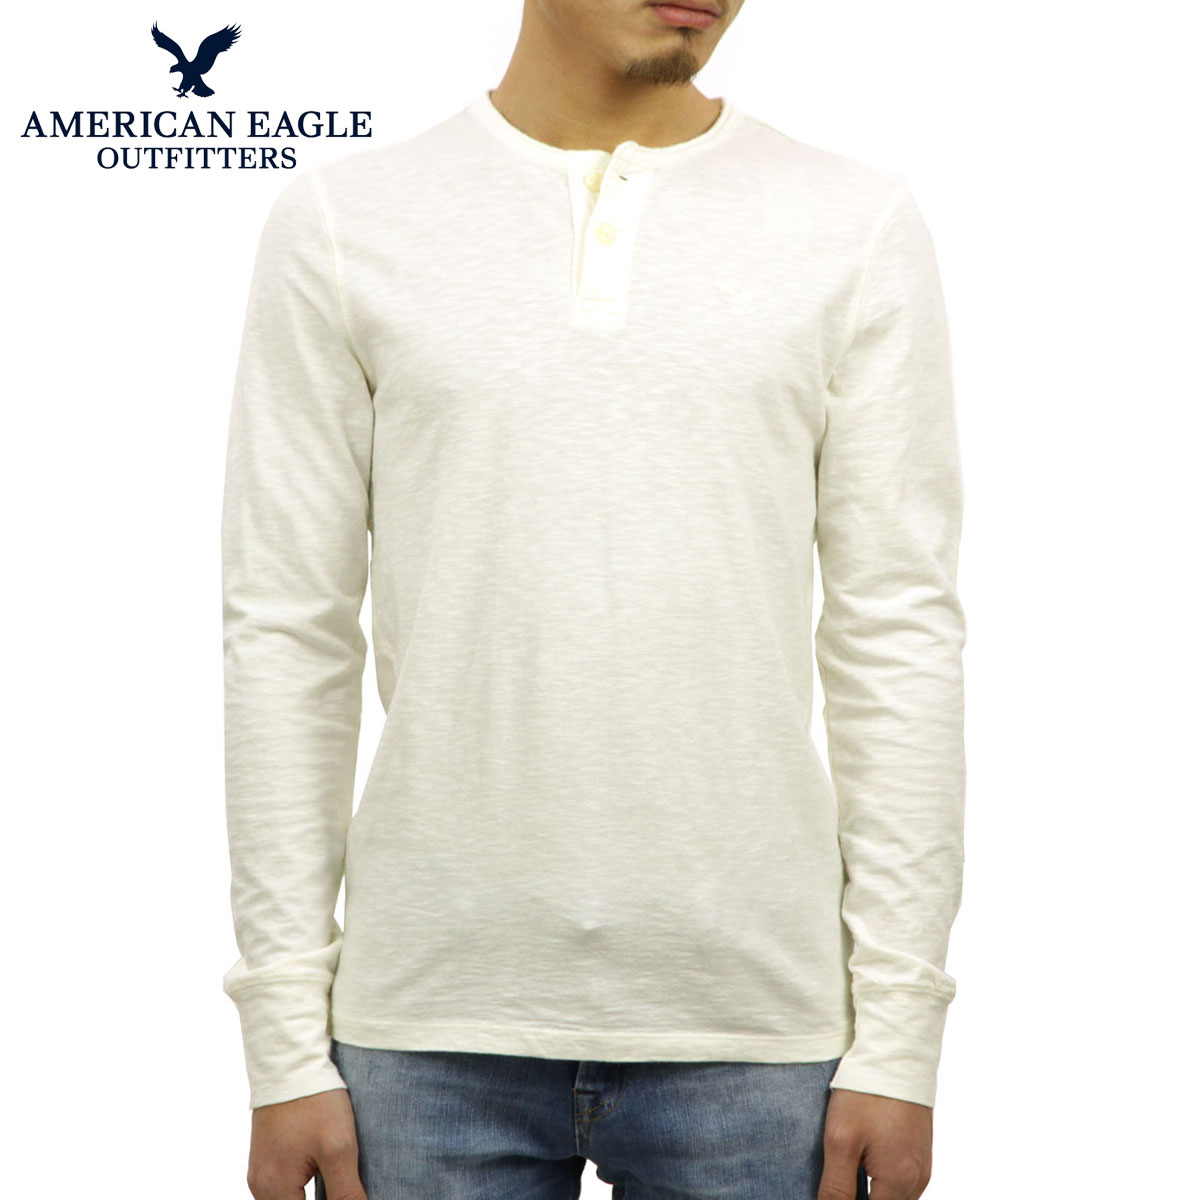 b458ce4a Rakuten Ichiba shop MIXON: American eagle AMERICAN EAGLE regular article  men long sleeves Henry T-shirt AE Legend Long Sleeve Henley 4171-7605 CREAM  D20S30 ...